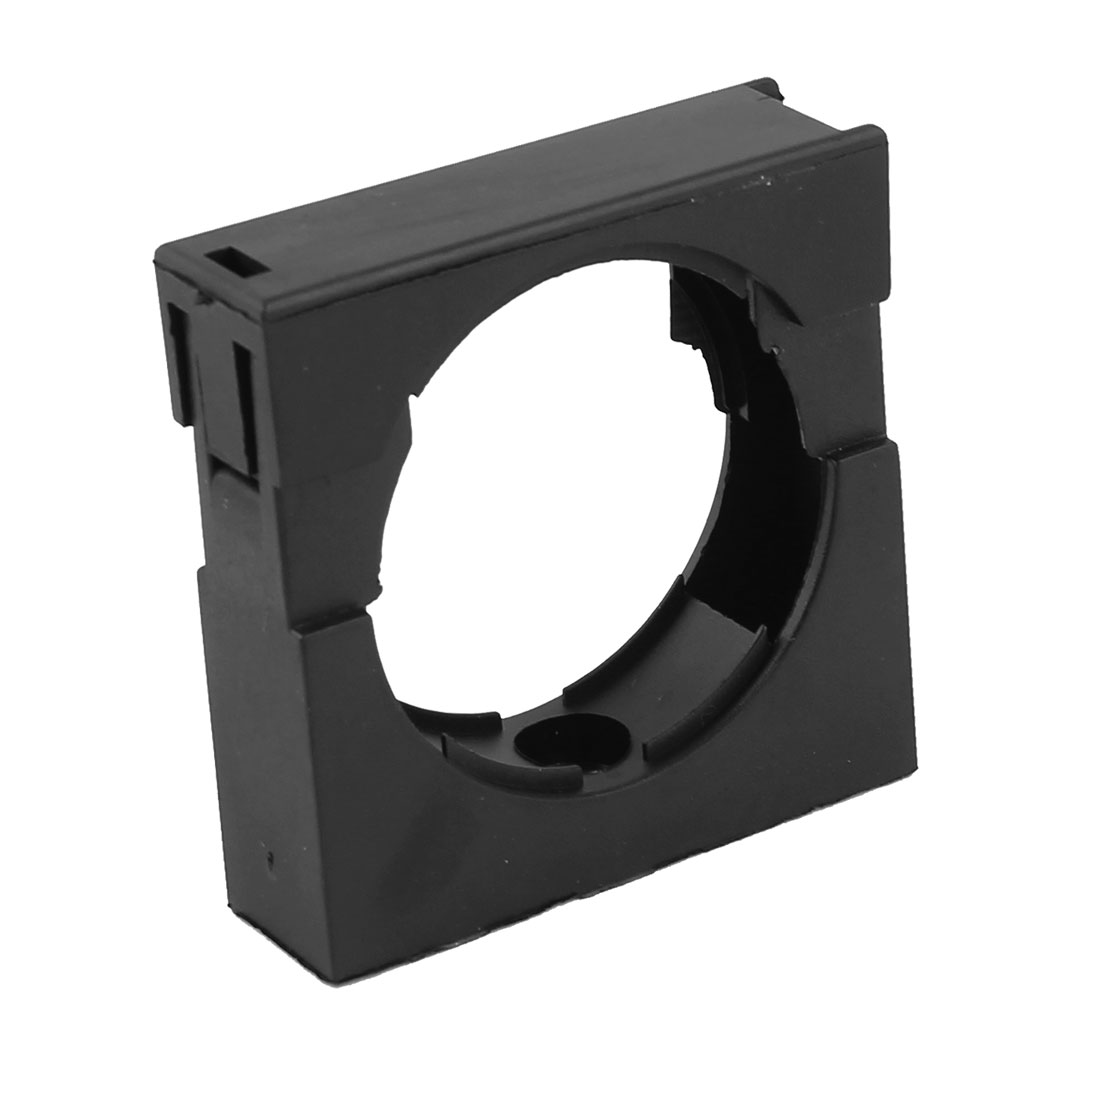 Black Fixed Mount Pipe Clip Bracket Clamp for AD54.5 Corrugated Conduit